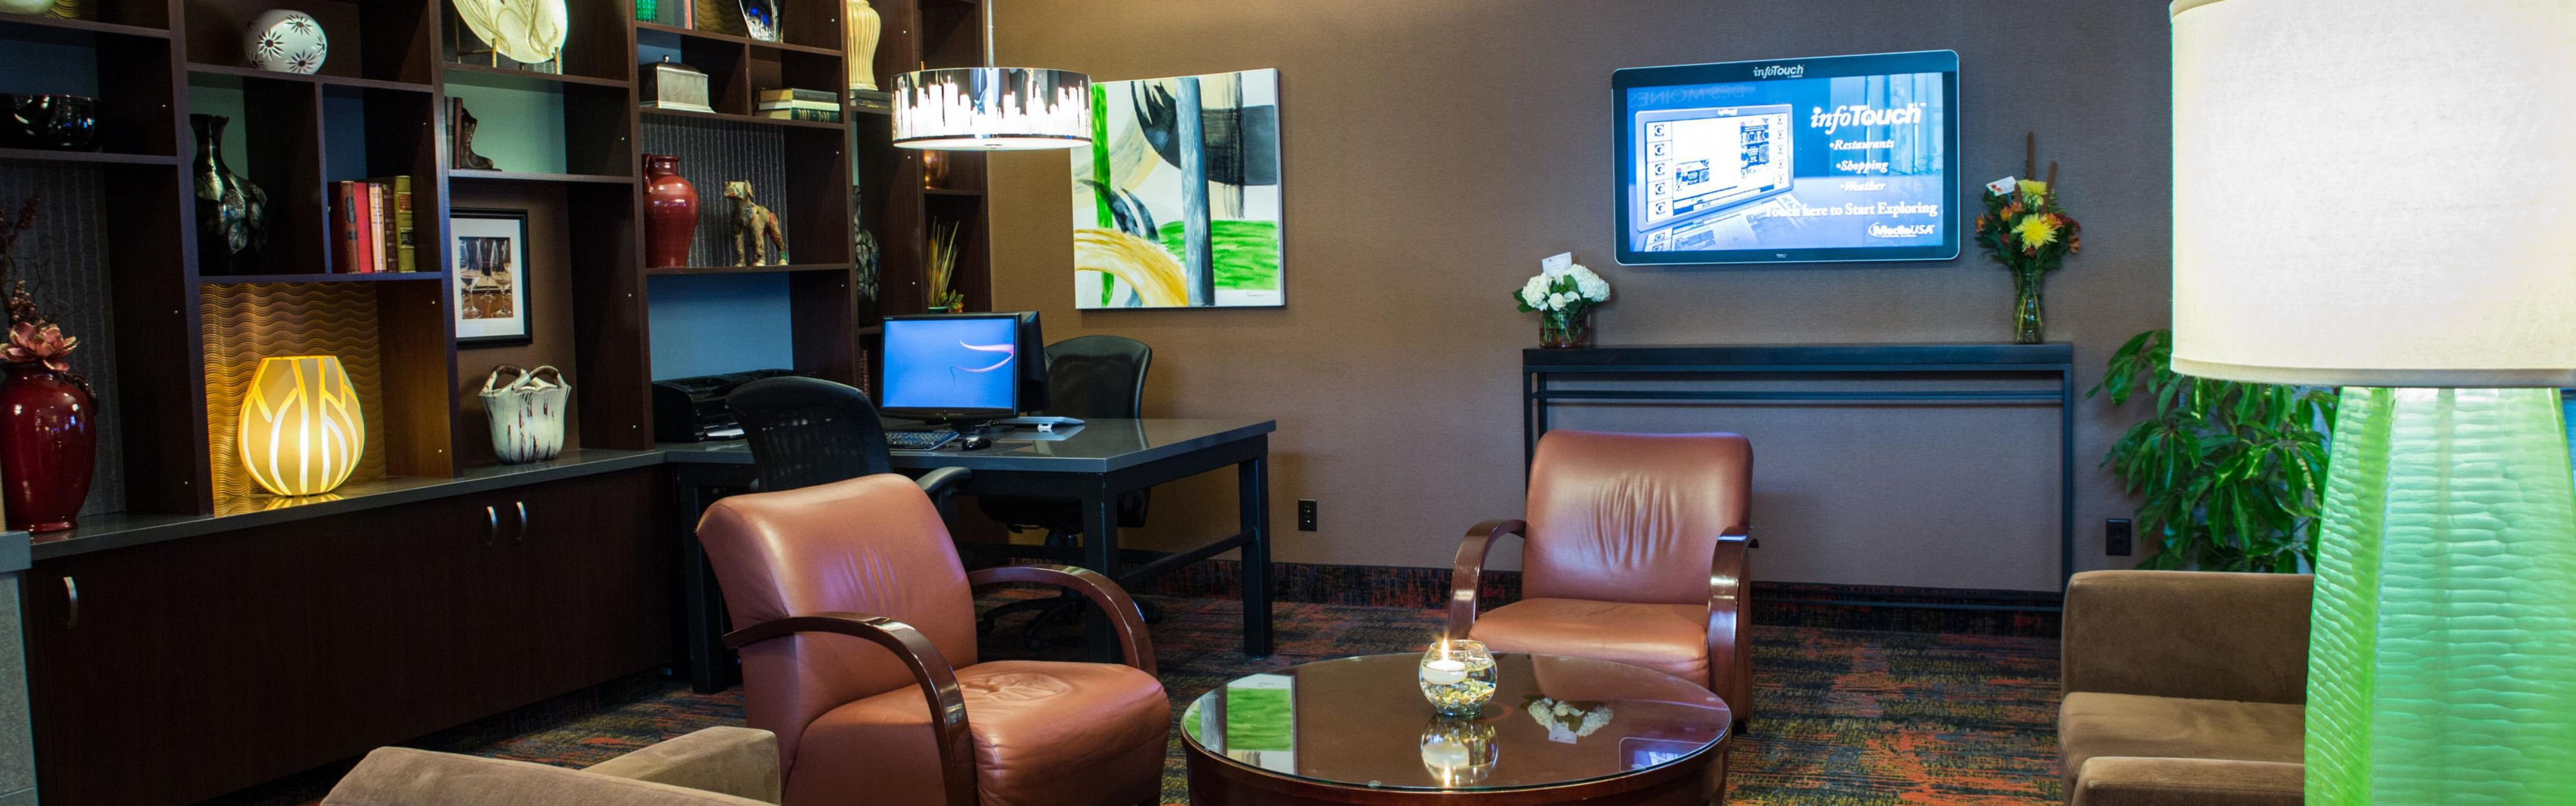 Holiday Inn Des Moines DTWN - Mercy Area image 2